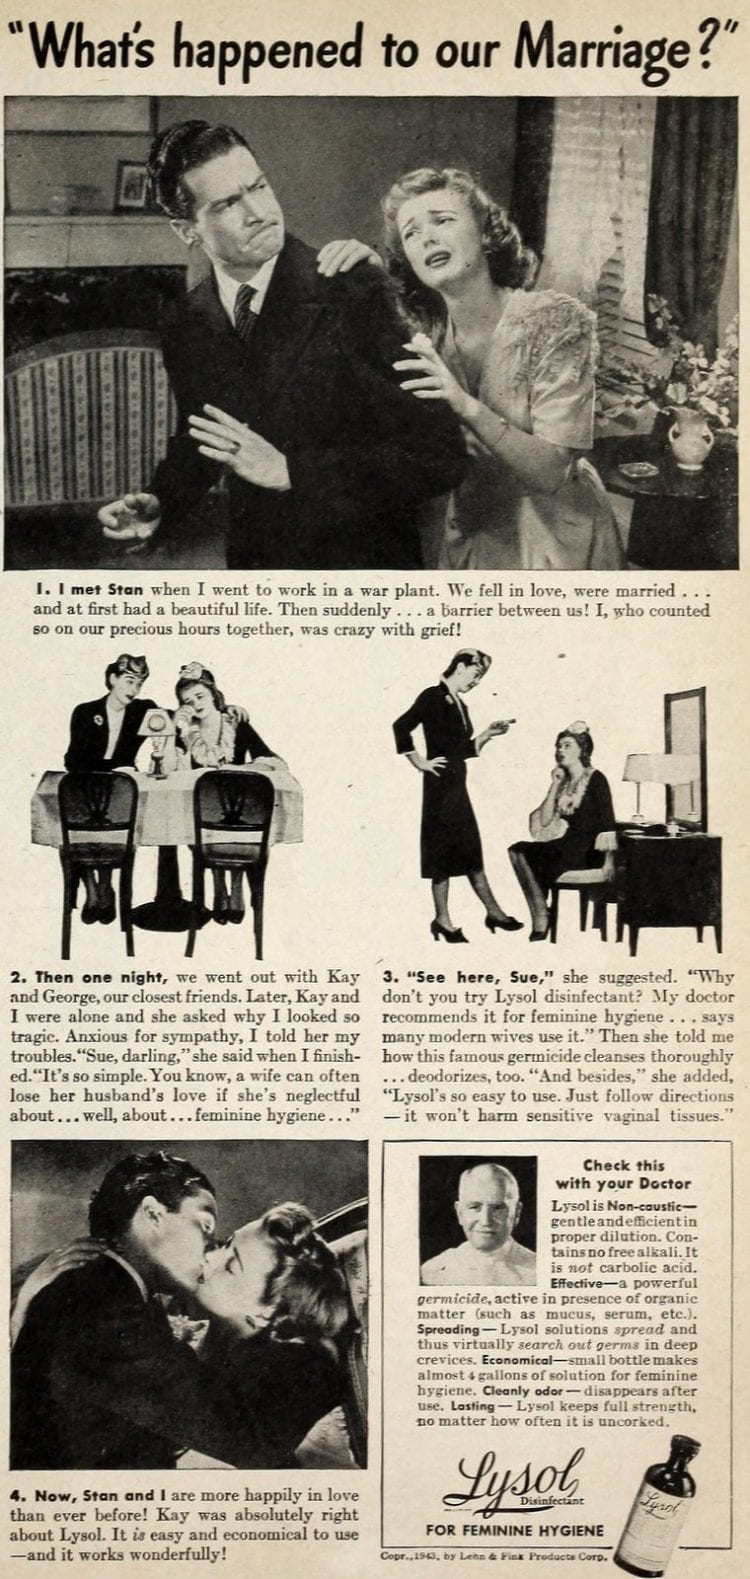 Vintage Lysol douche ads from the 1950s (3)